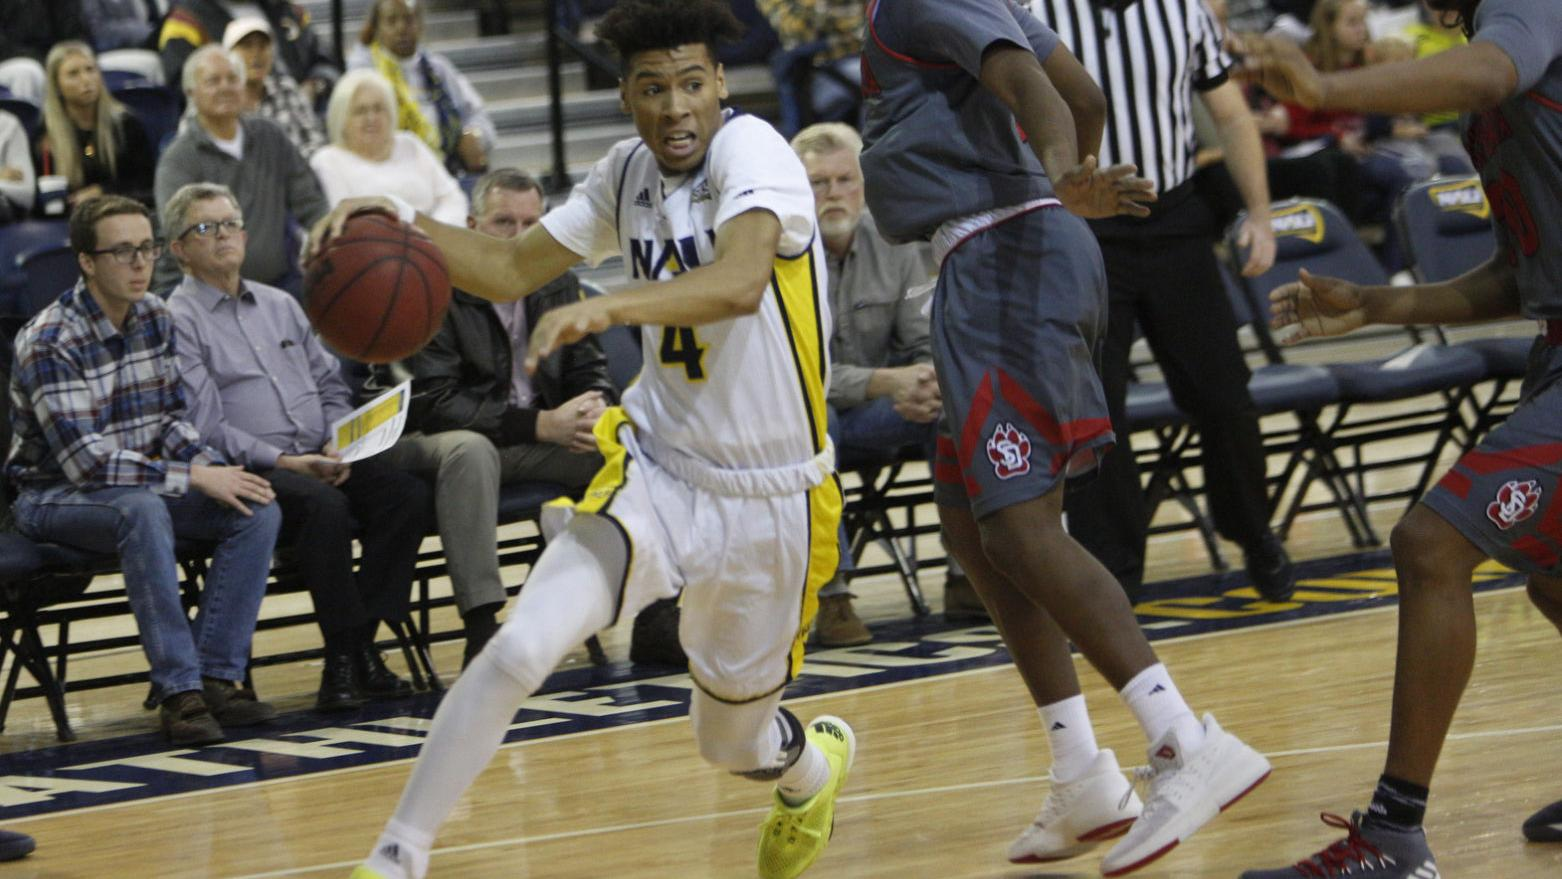 NAU falls to South Dakota as Anderson breaks out for career high